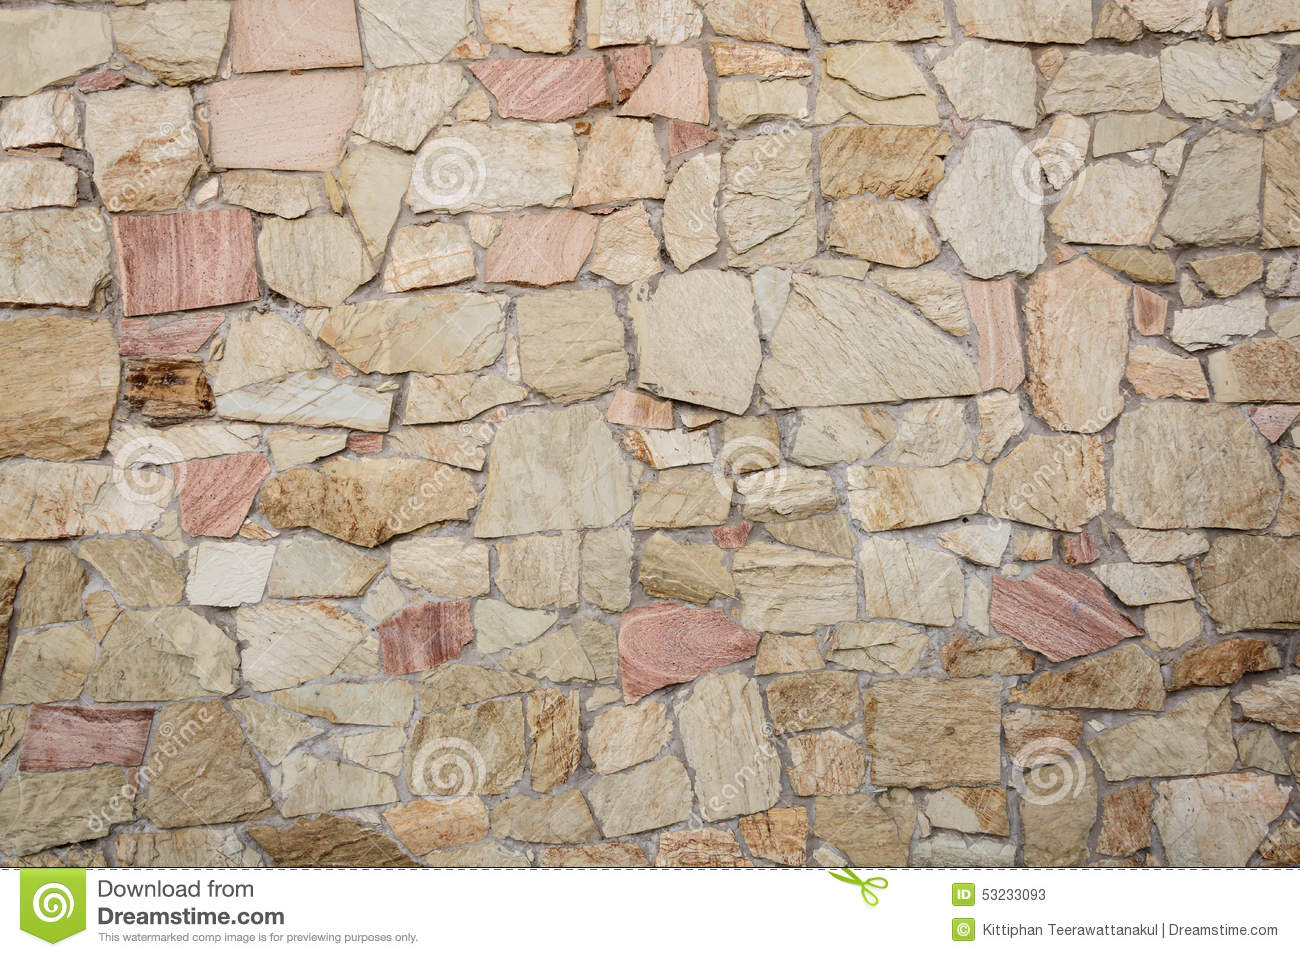 Pared de piedra decorativa texturizada foto de archivo - Piedra decorativa para paredes ...